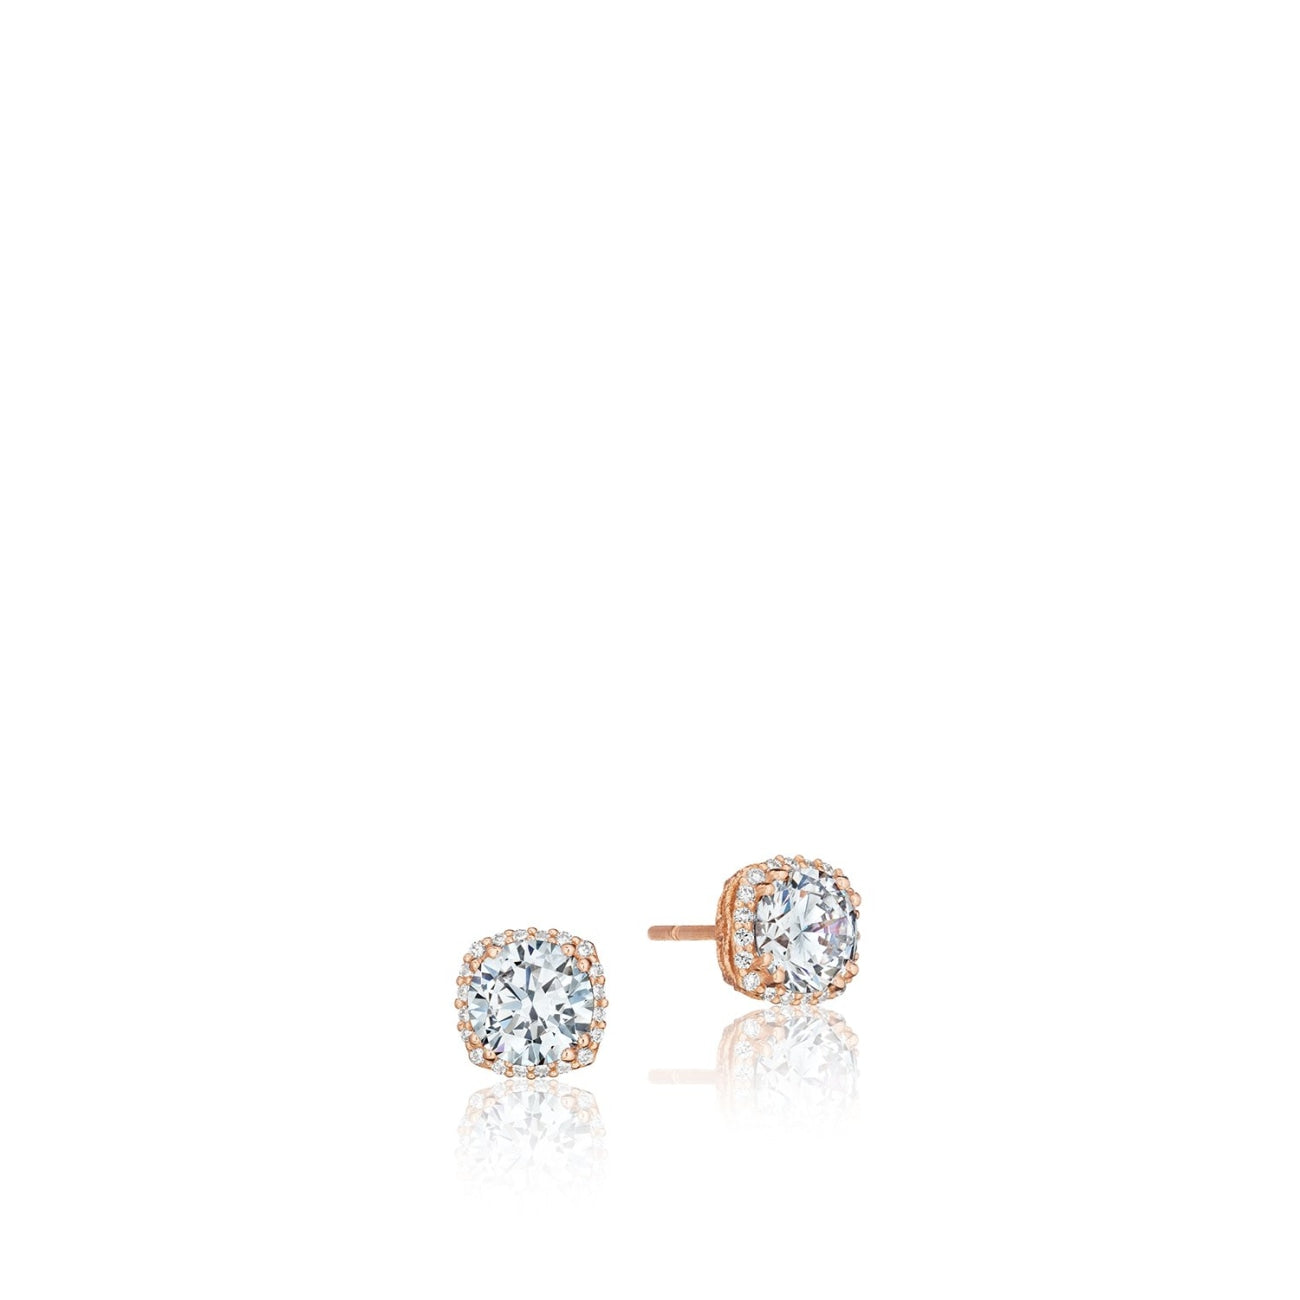 Tacori Jewelry - Rose Gold Earrings | Manfredi Jewels